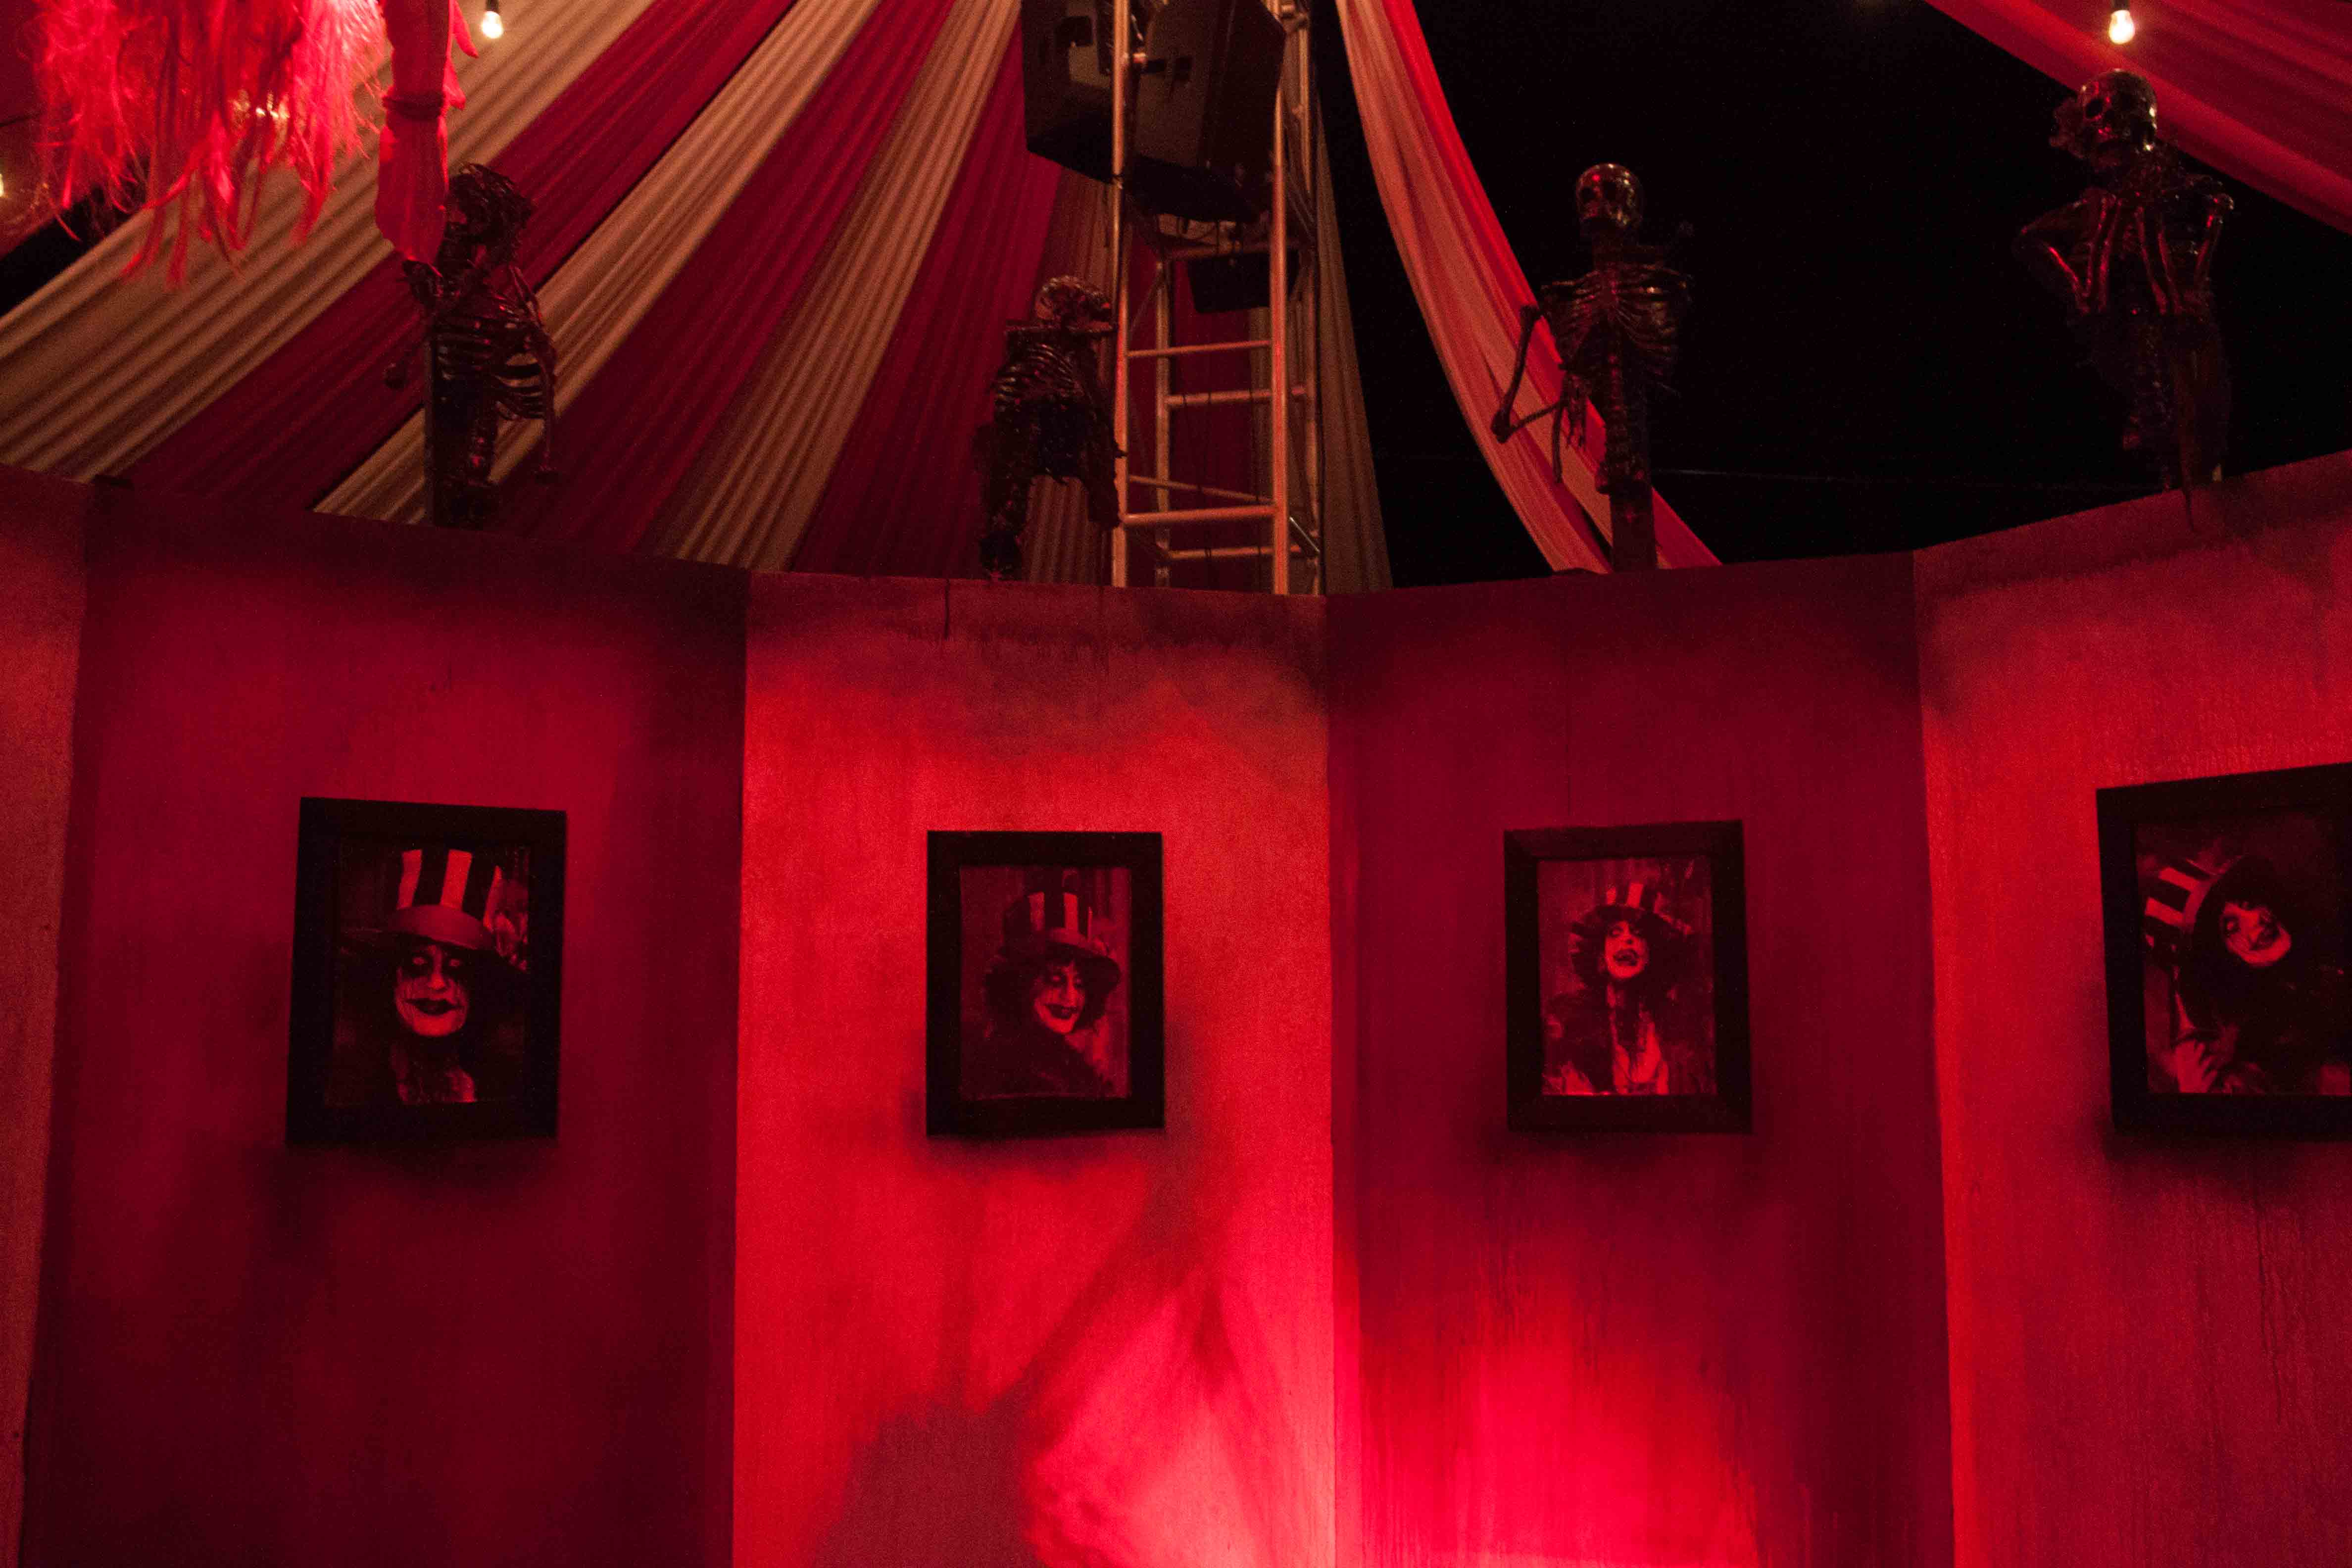 Queen Mary Scare Zone